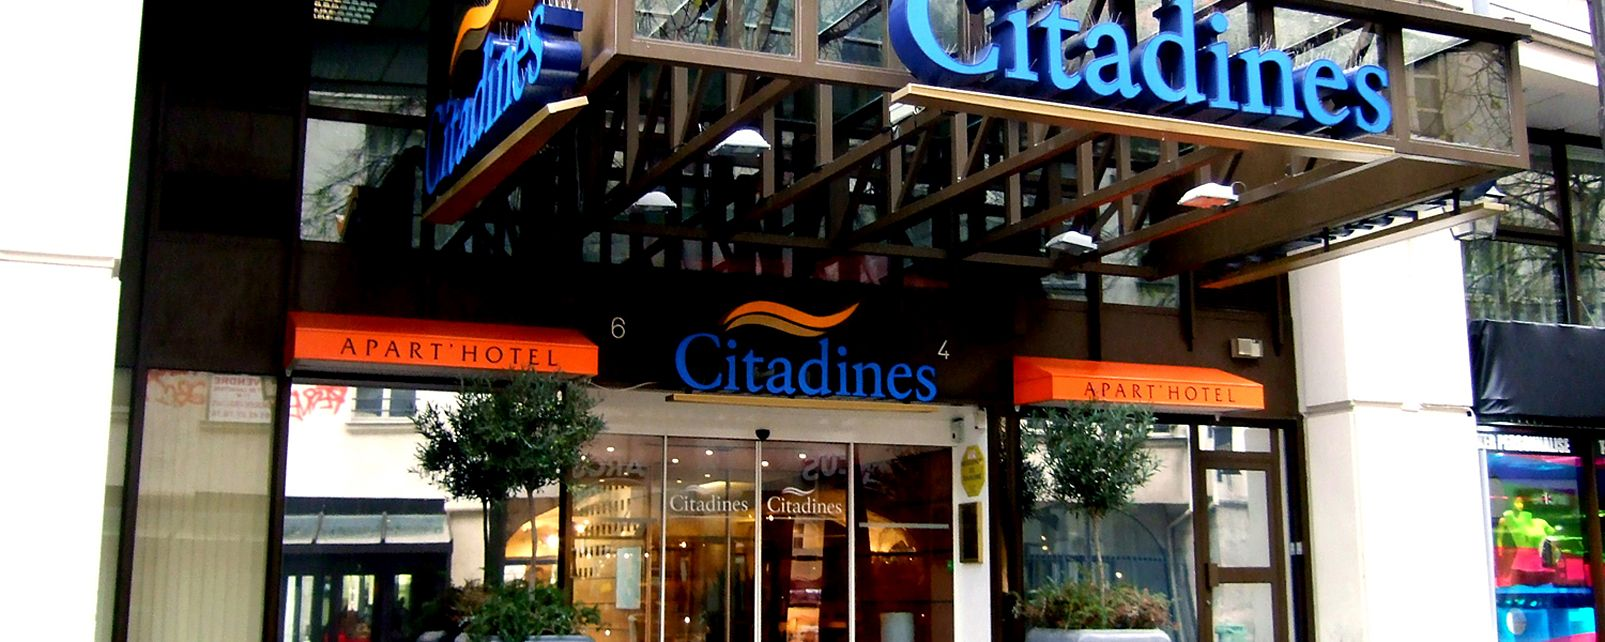 H tel citadines les halles apart paris paris france for Apart hotel citadines